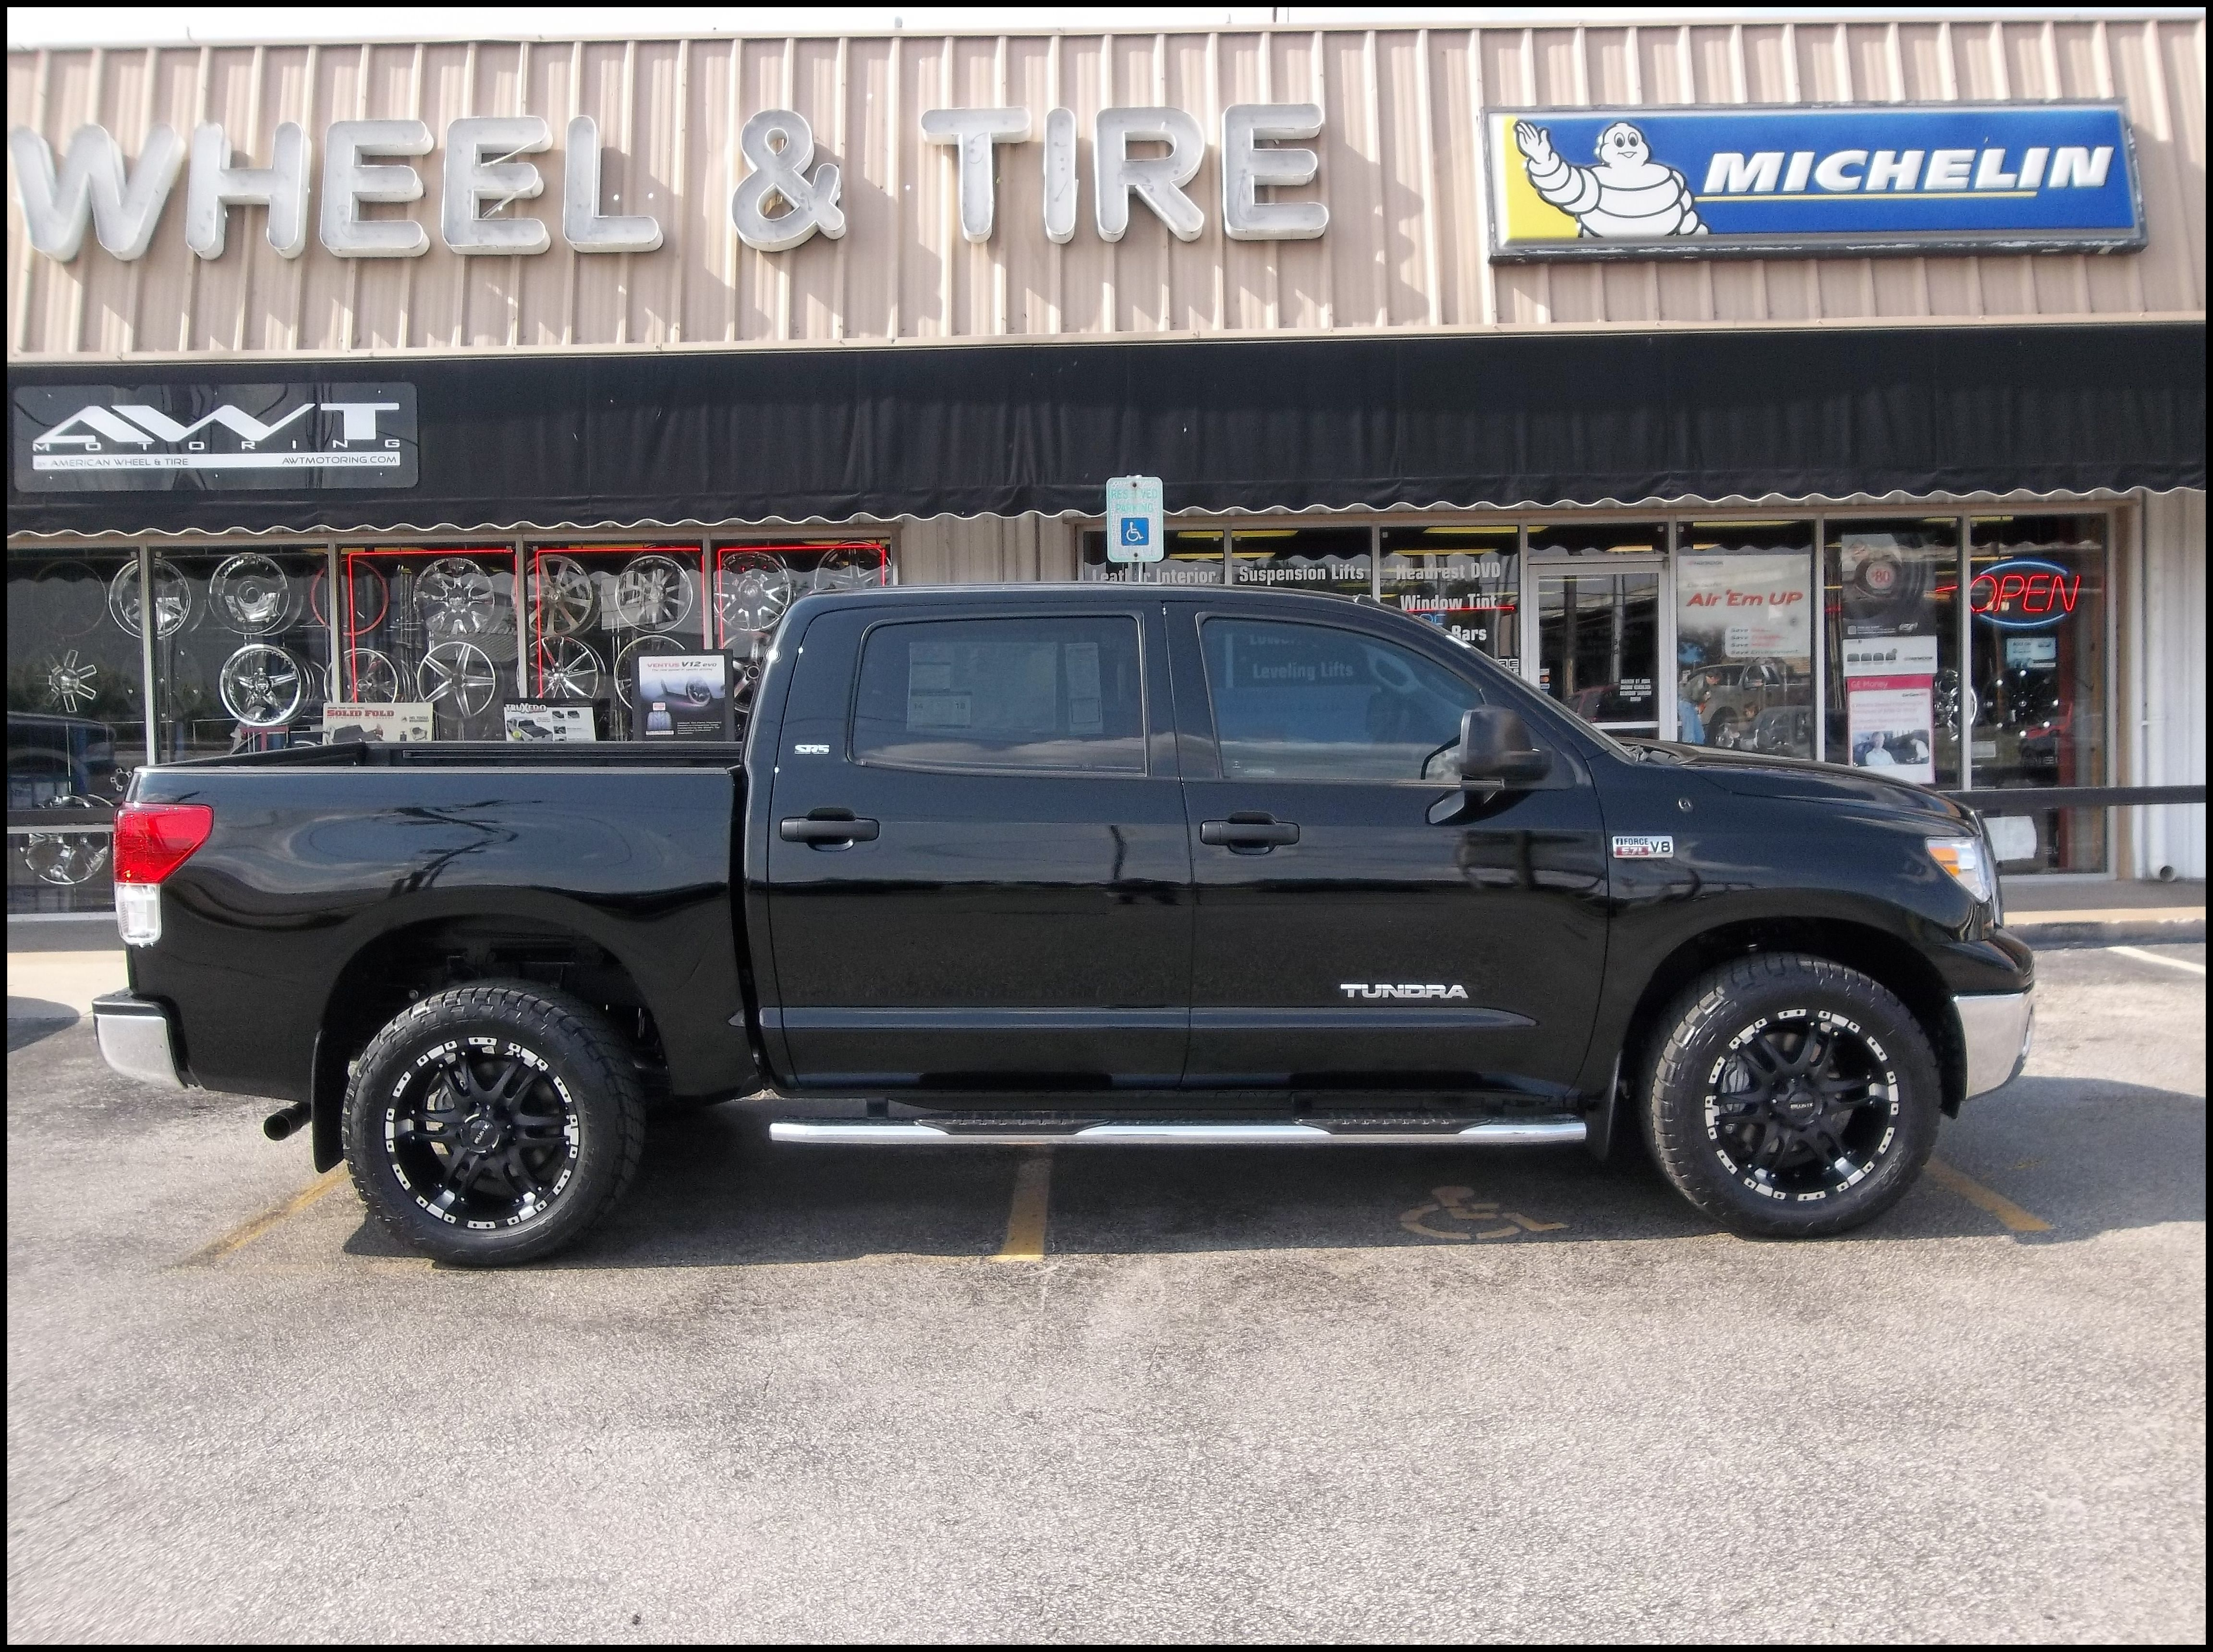 Special Lifted toyota Tundra with Black Rims Find the Classic Rims Your Review